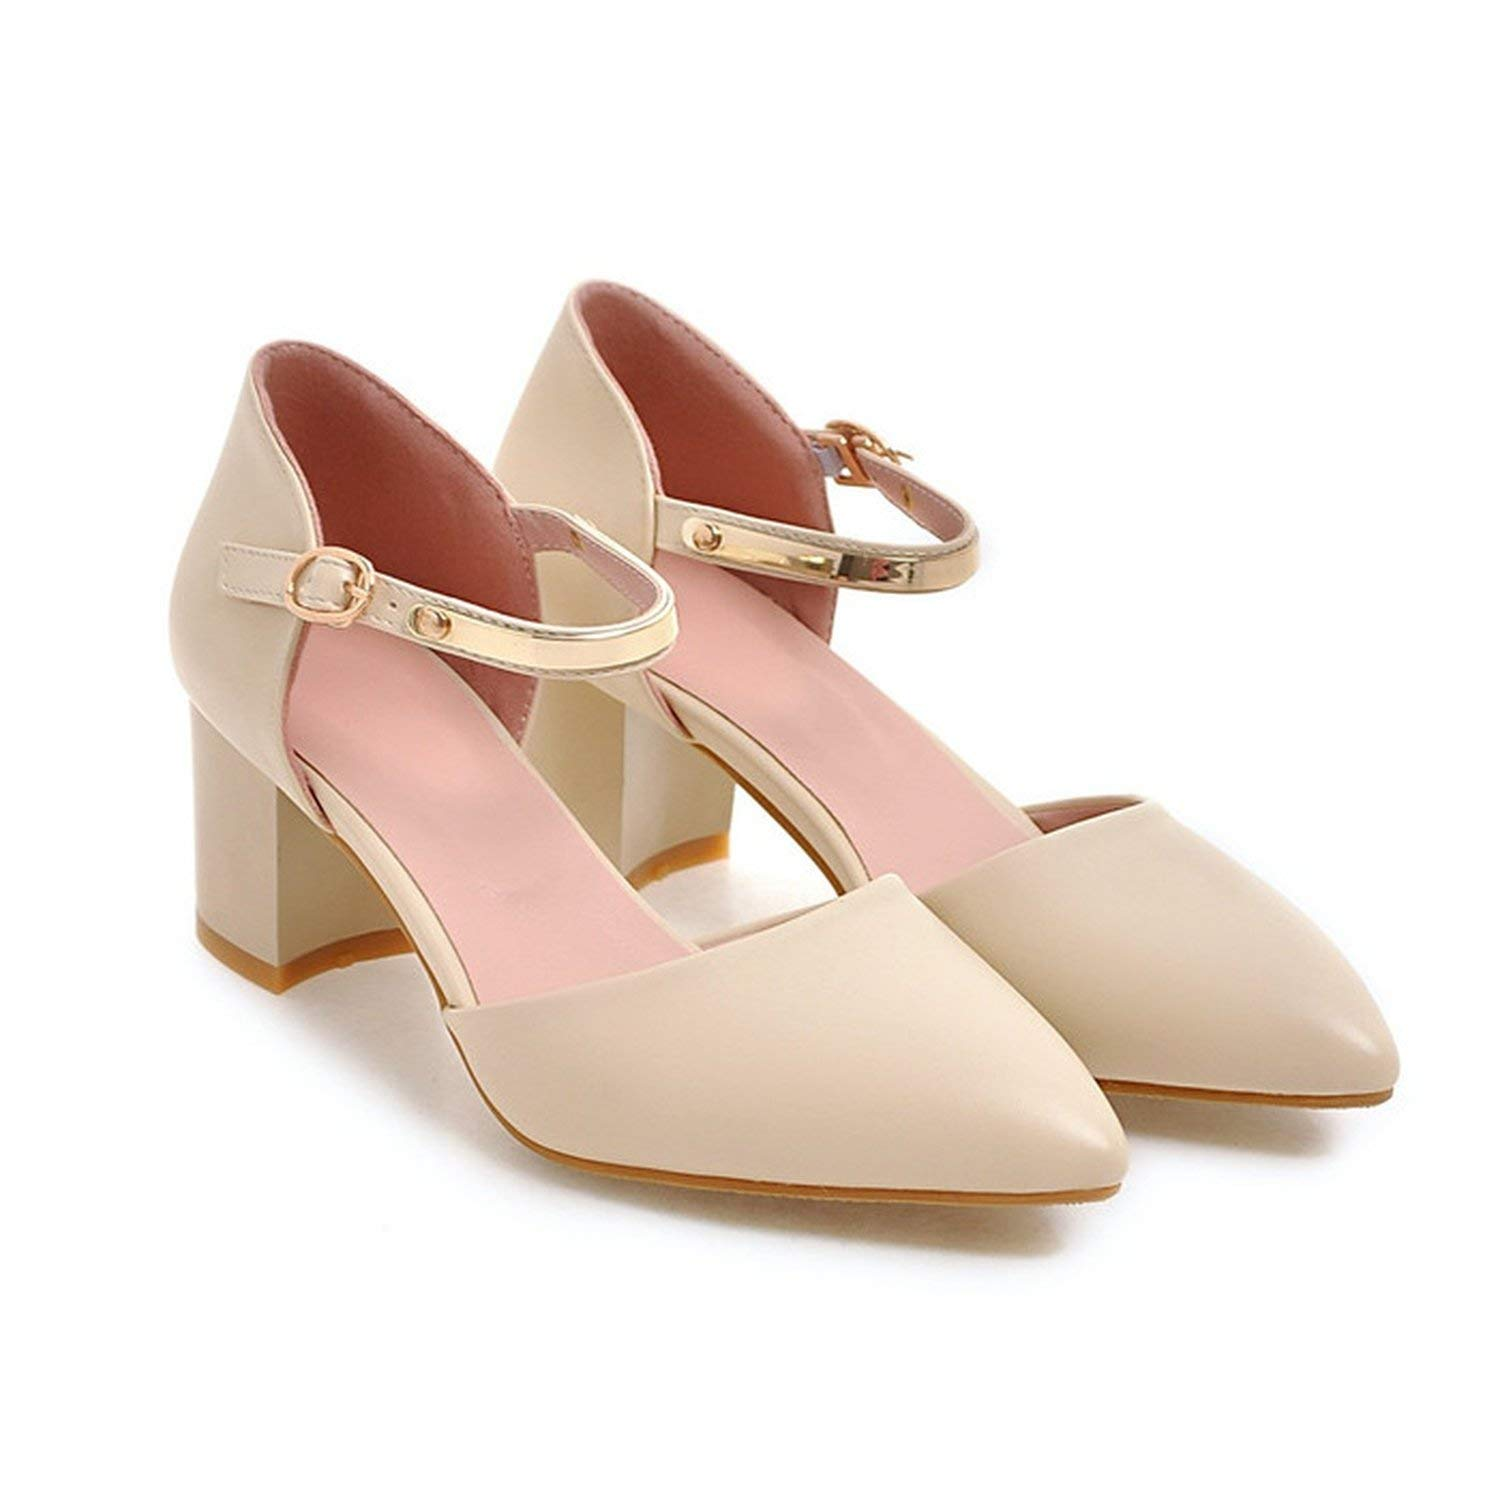 Beige coolemon Women Pumps High Heels Lady shoes Ankle Strap Pointed Toe shoes Thick Heel Female Pumps 2018 Autumn Big Size 33-43 bluee